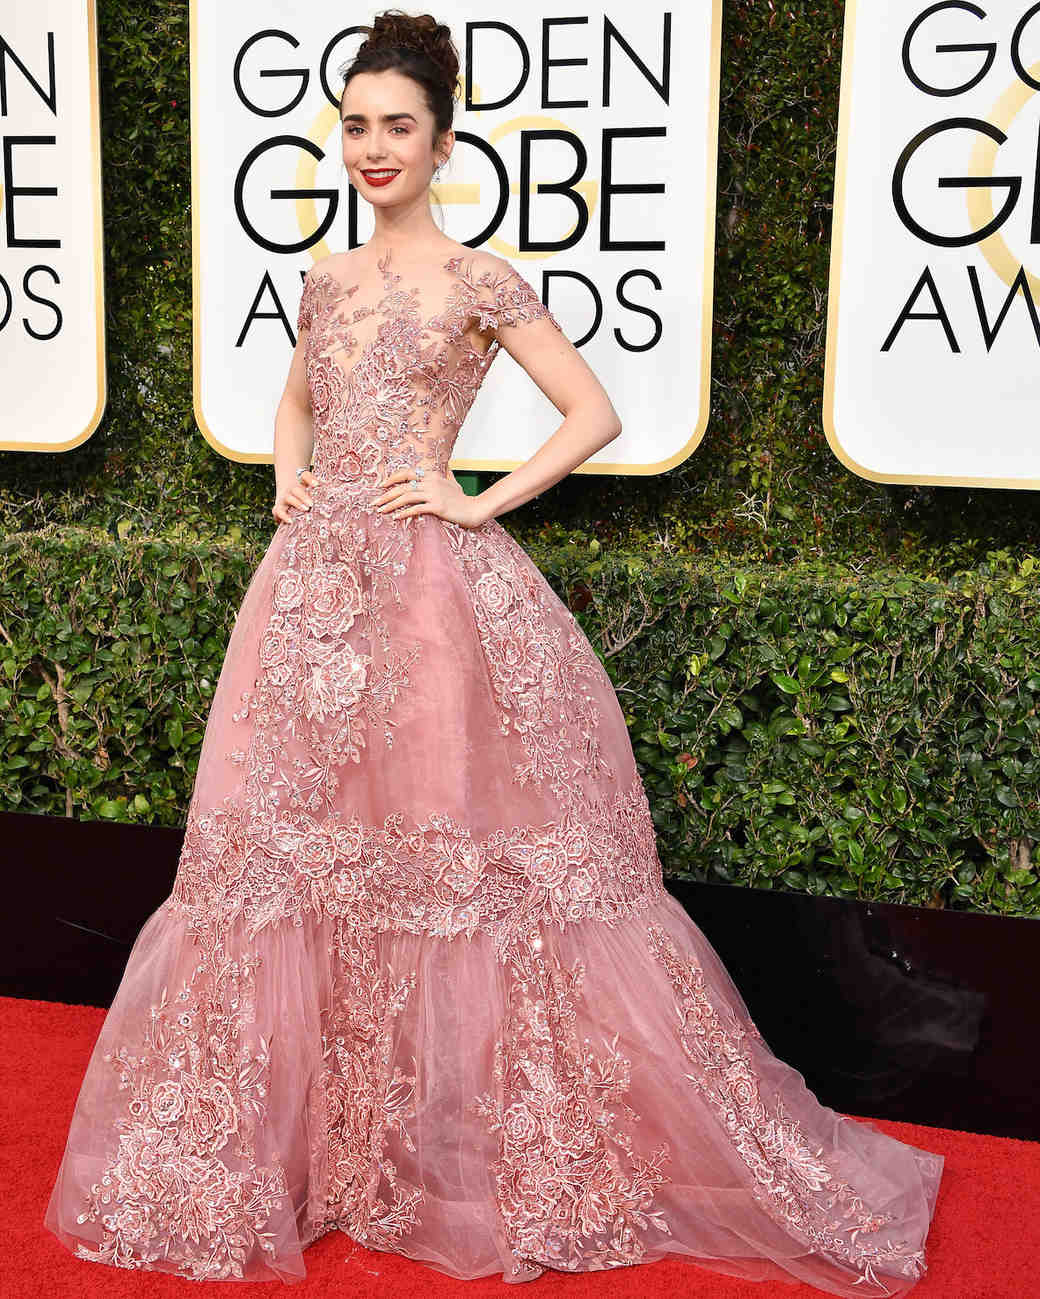 Golden Globes 2017: The Best Red Carpet Dresses to Inspire ...